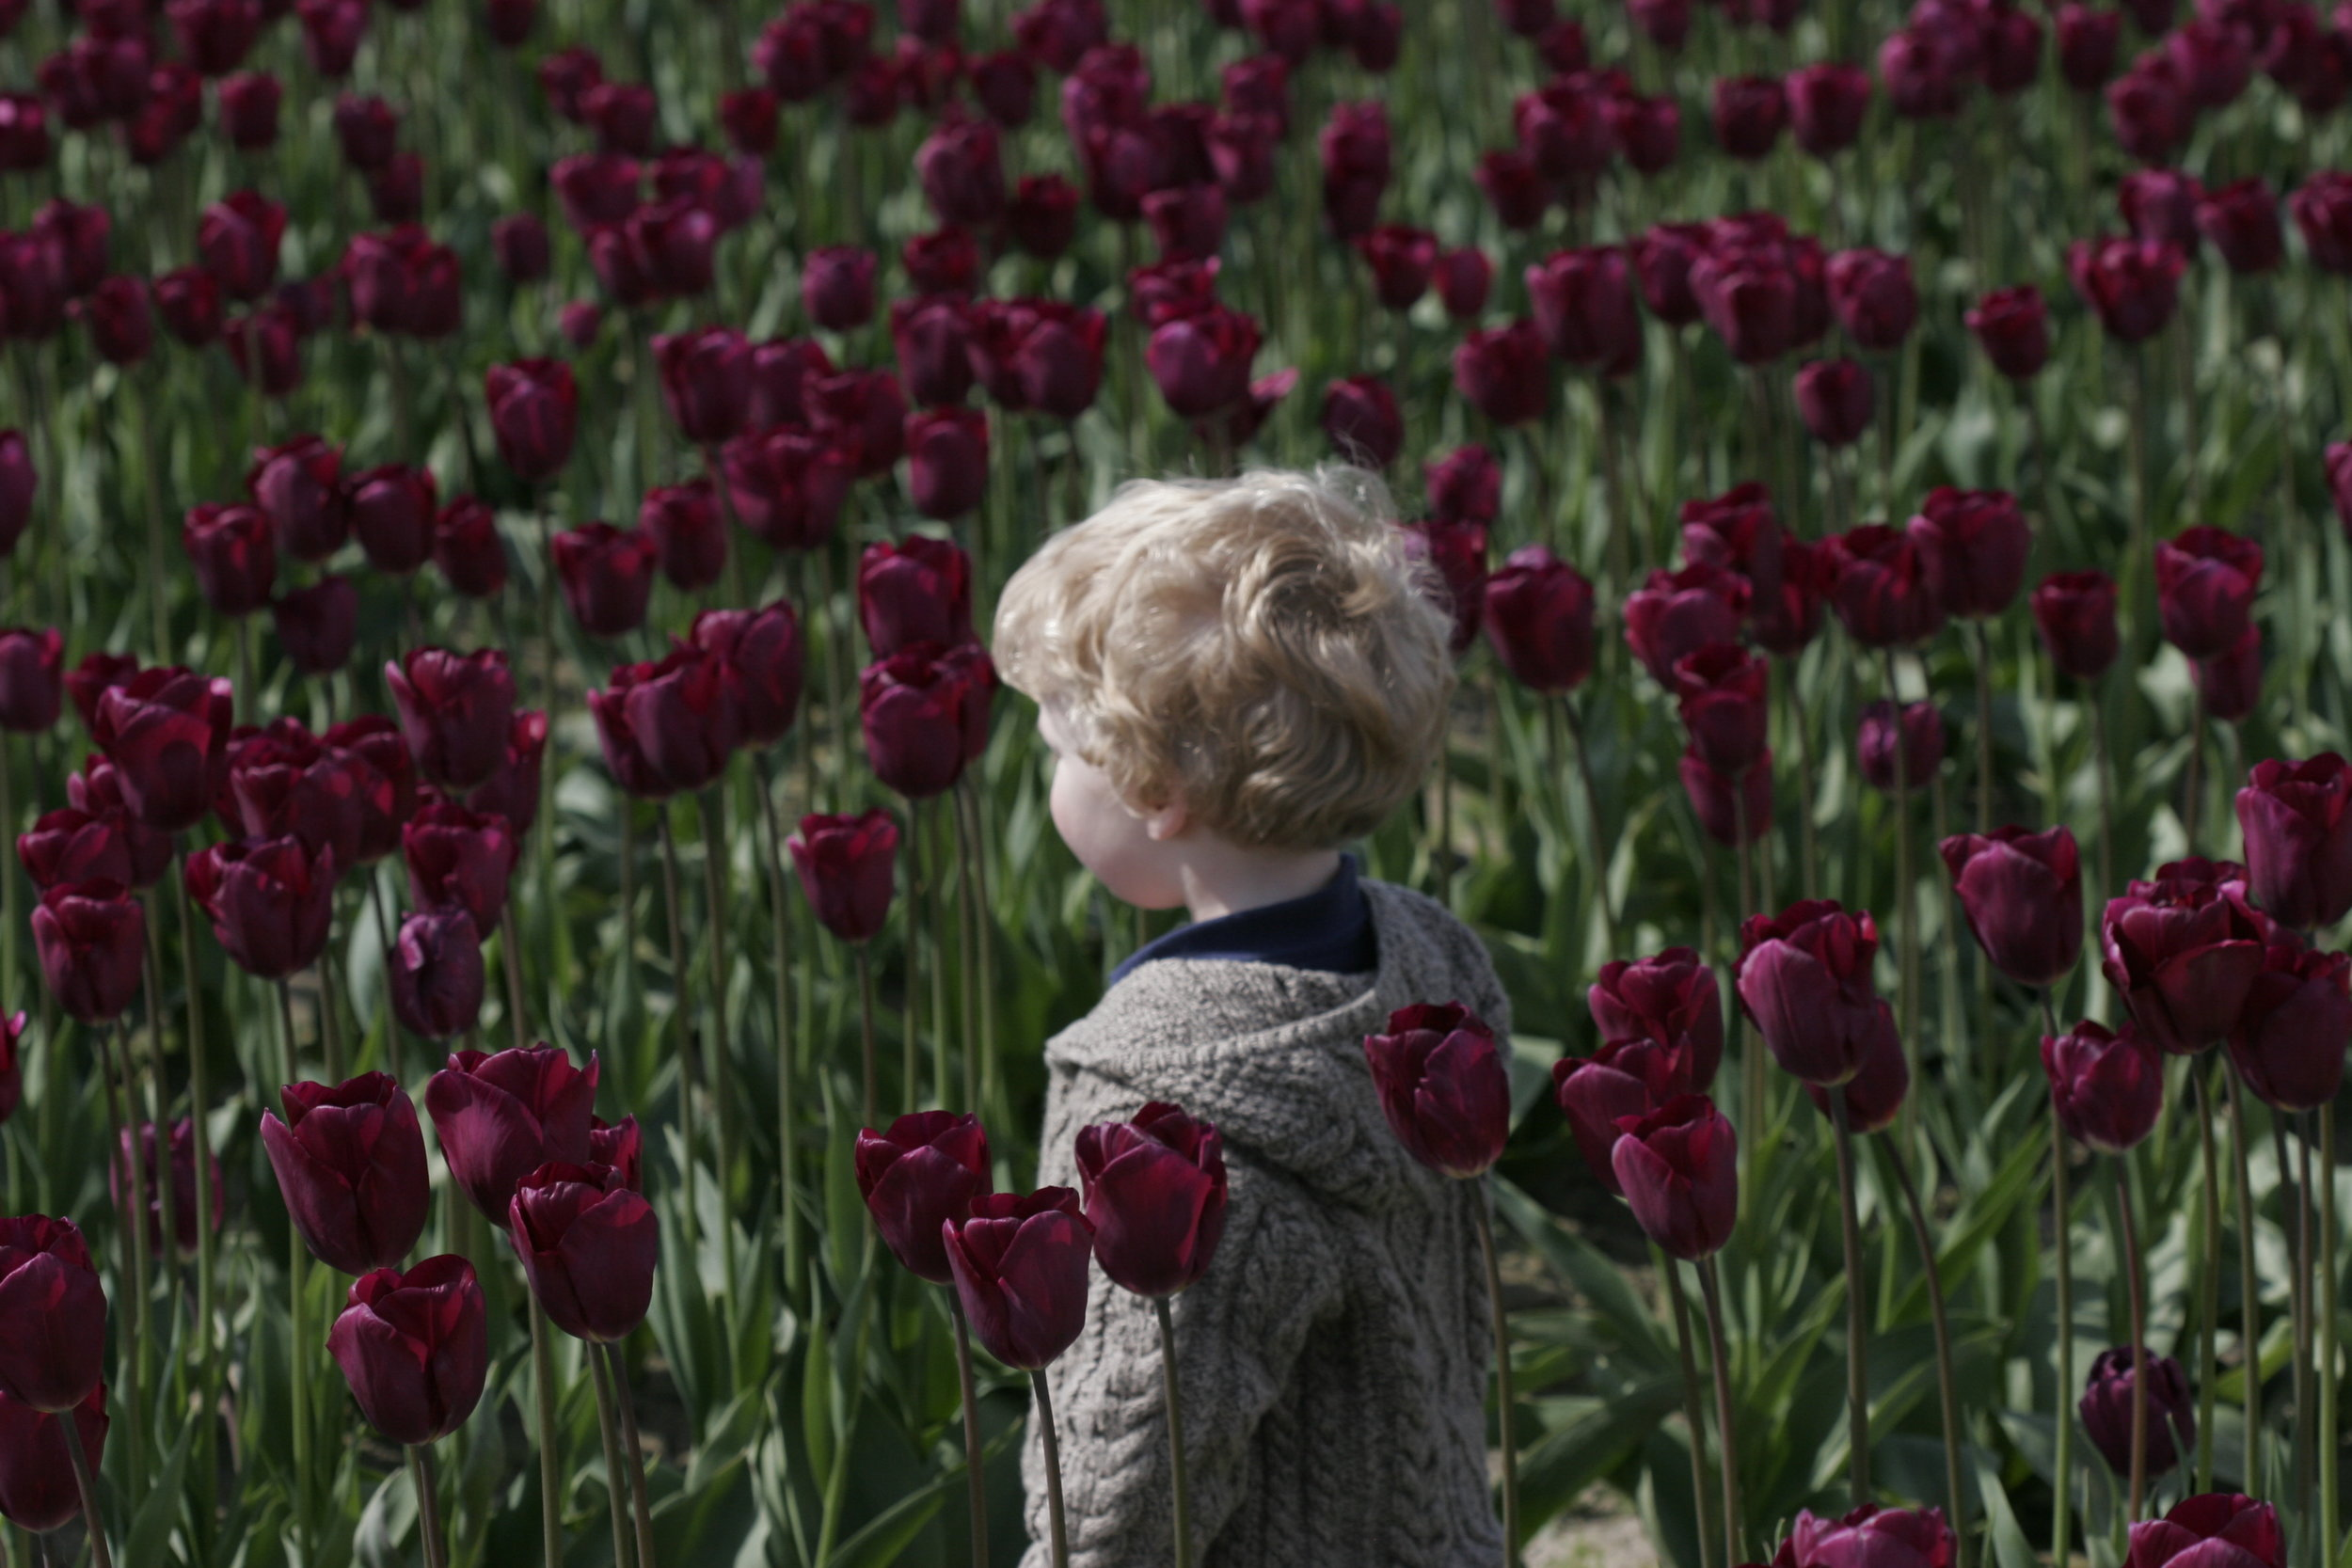 Little Boy in Tulips - Skagit Valley Tulip Festival, WA